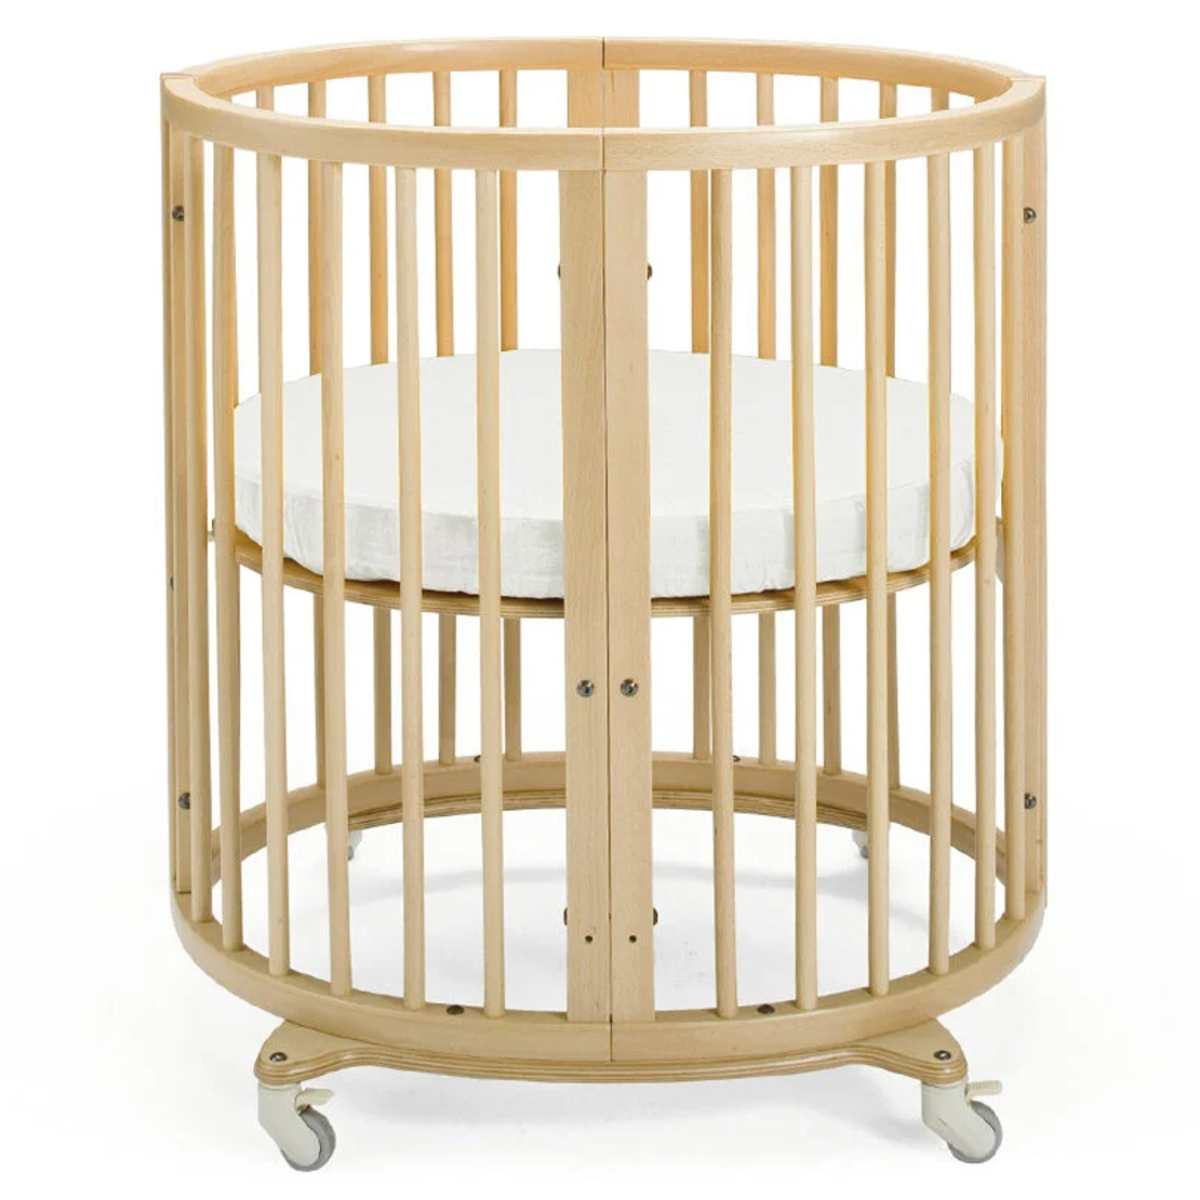 Lit bébé Mini Berceau Evolutif Sleepi - Naturel Mini Berceau Evolutif Sleepi - Naturel